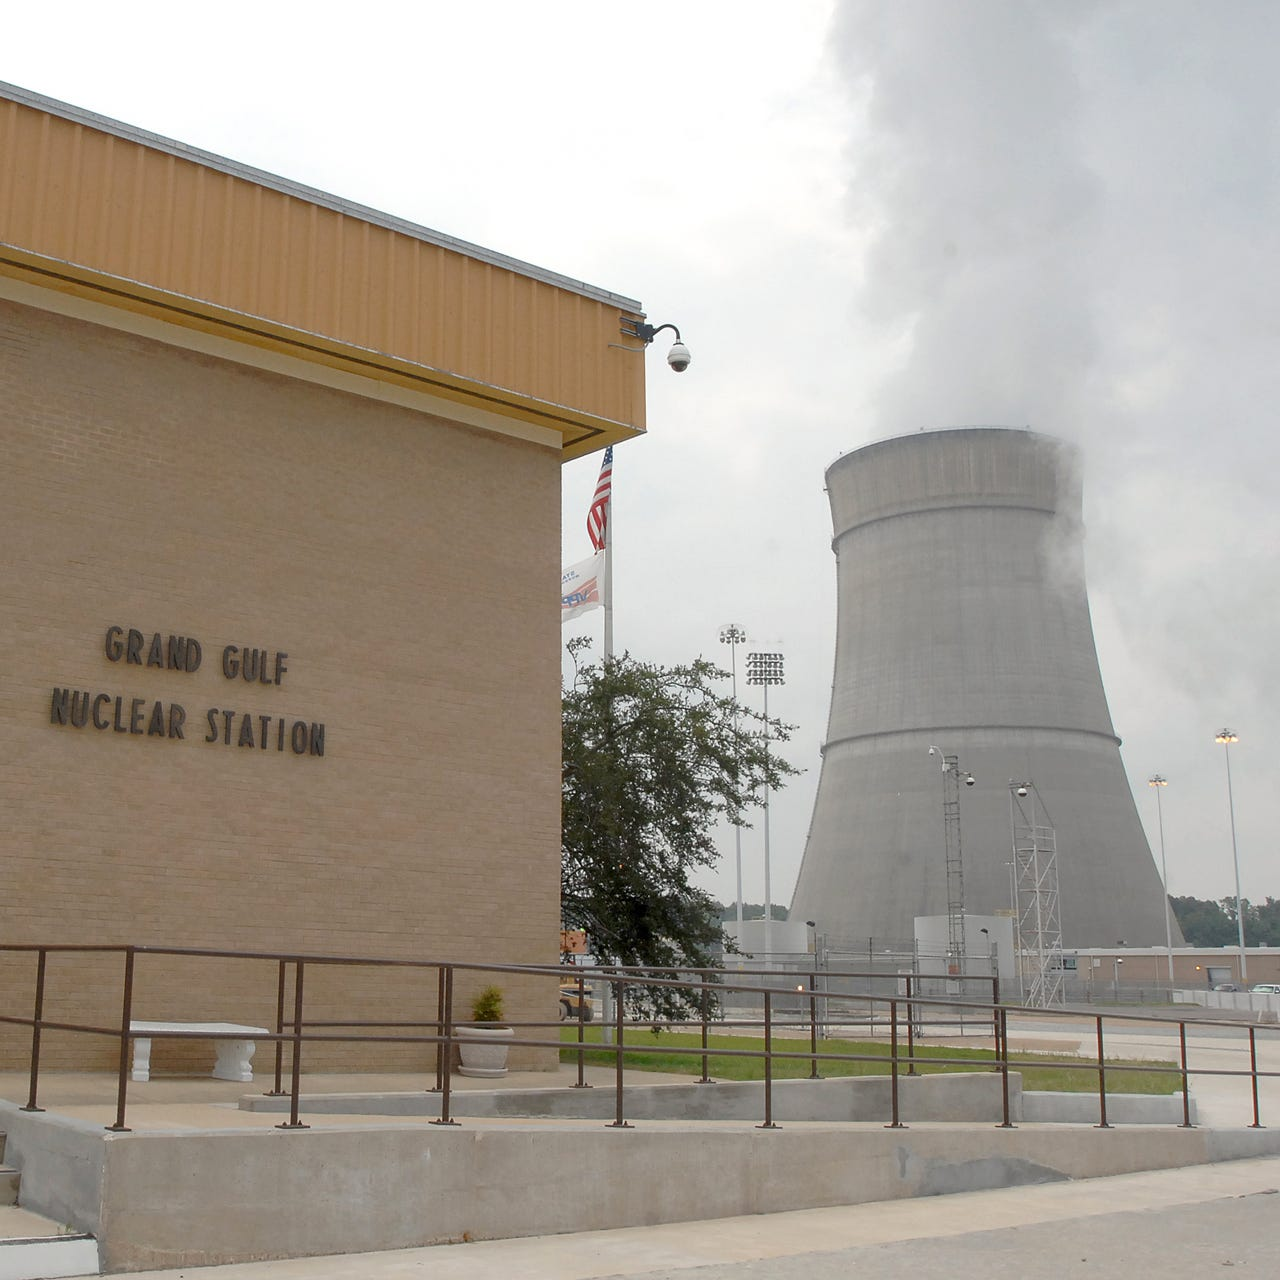 Investigation underway after nuclear power plant unexpectedly shut down